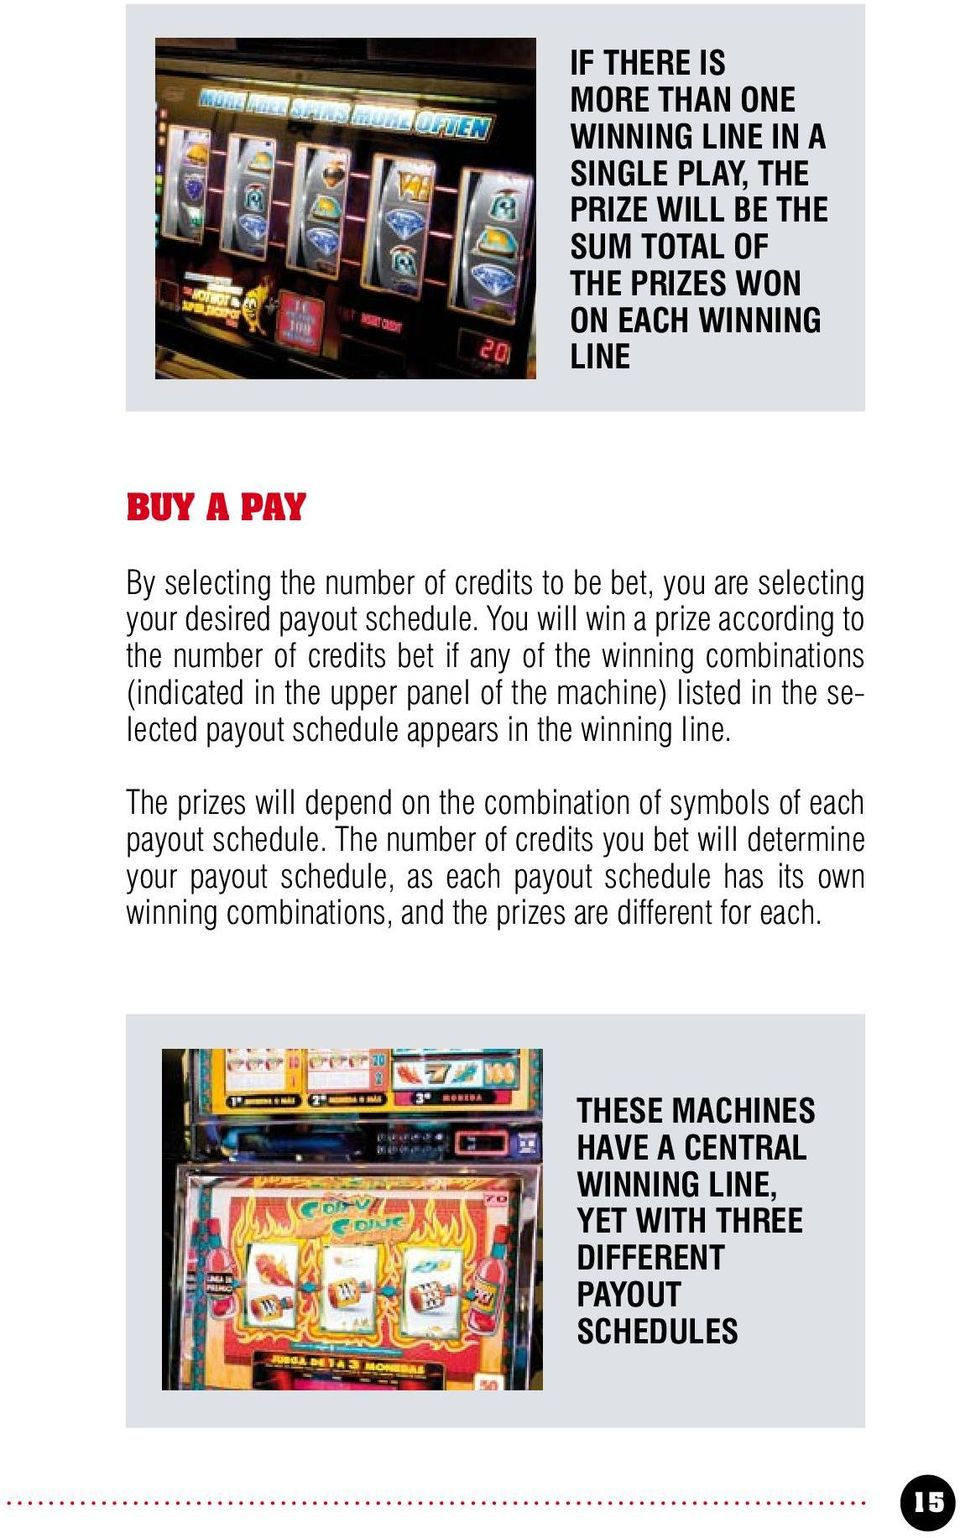 You will win a prize according to the number of credits bet if any of the winning combinations (indicated in the upper panel of the machine) listed in the selected payout schedule appears in